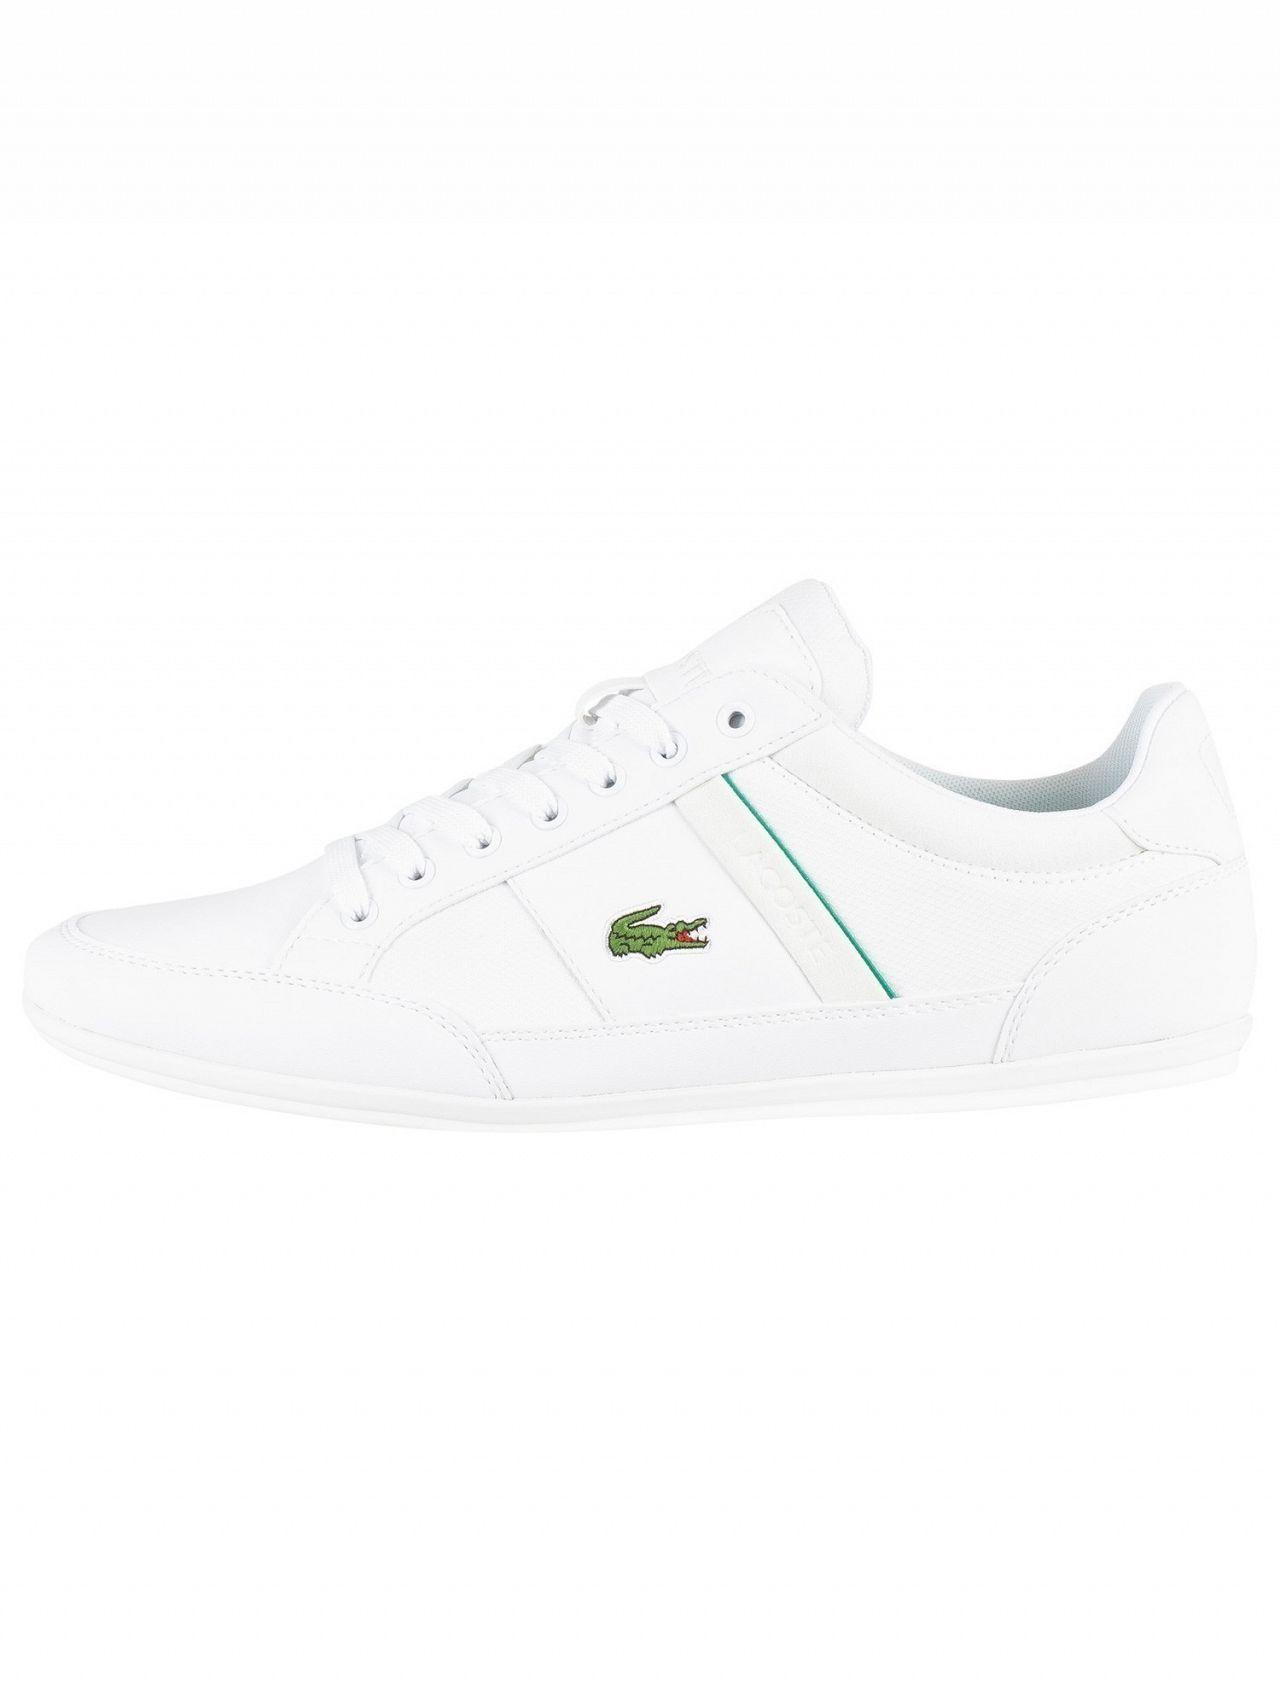 dce475c21 Lacoste - White Chaymon 219 1 Cma Leather Trainers for Men - Lyst. View  fullscreen